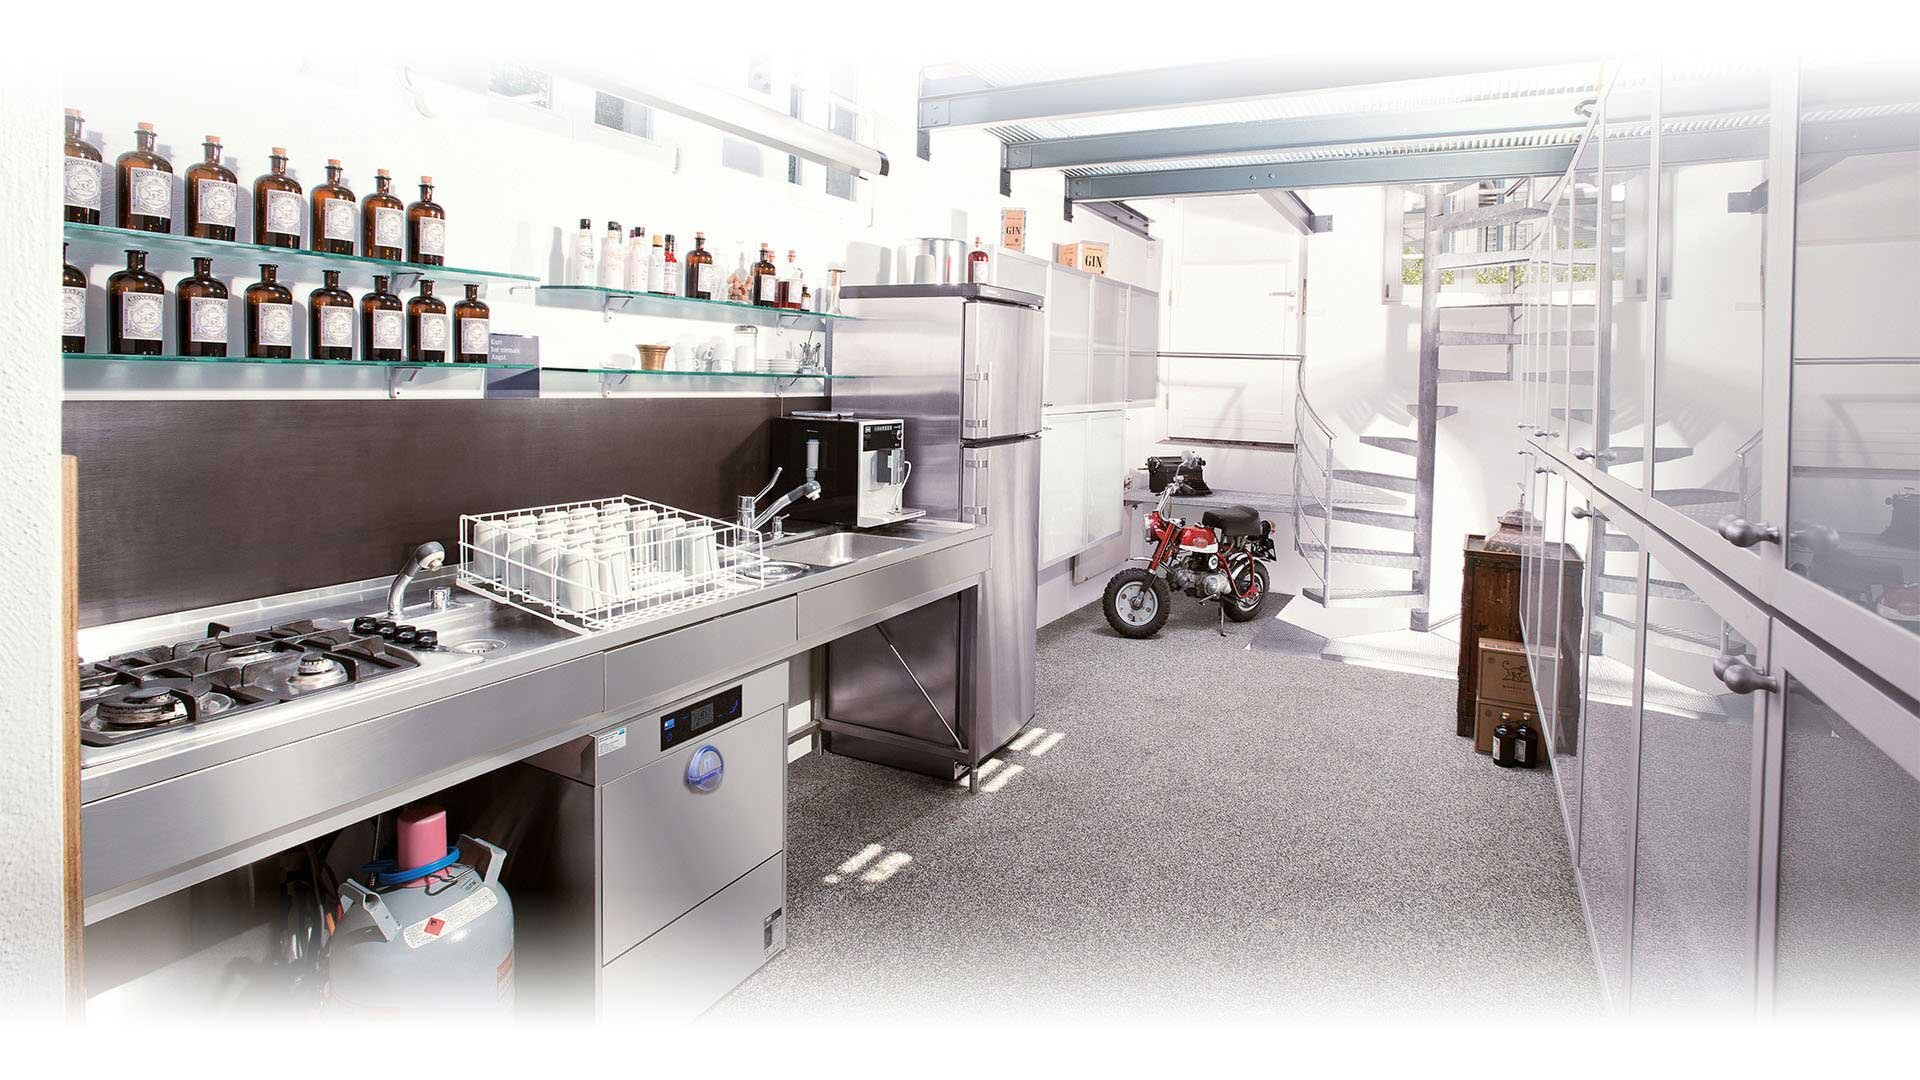 Clean solutions for the food industry